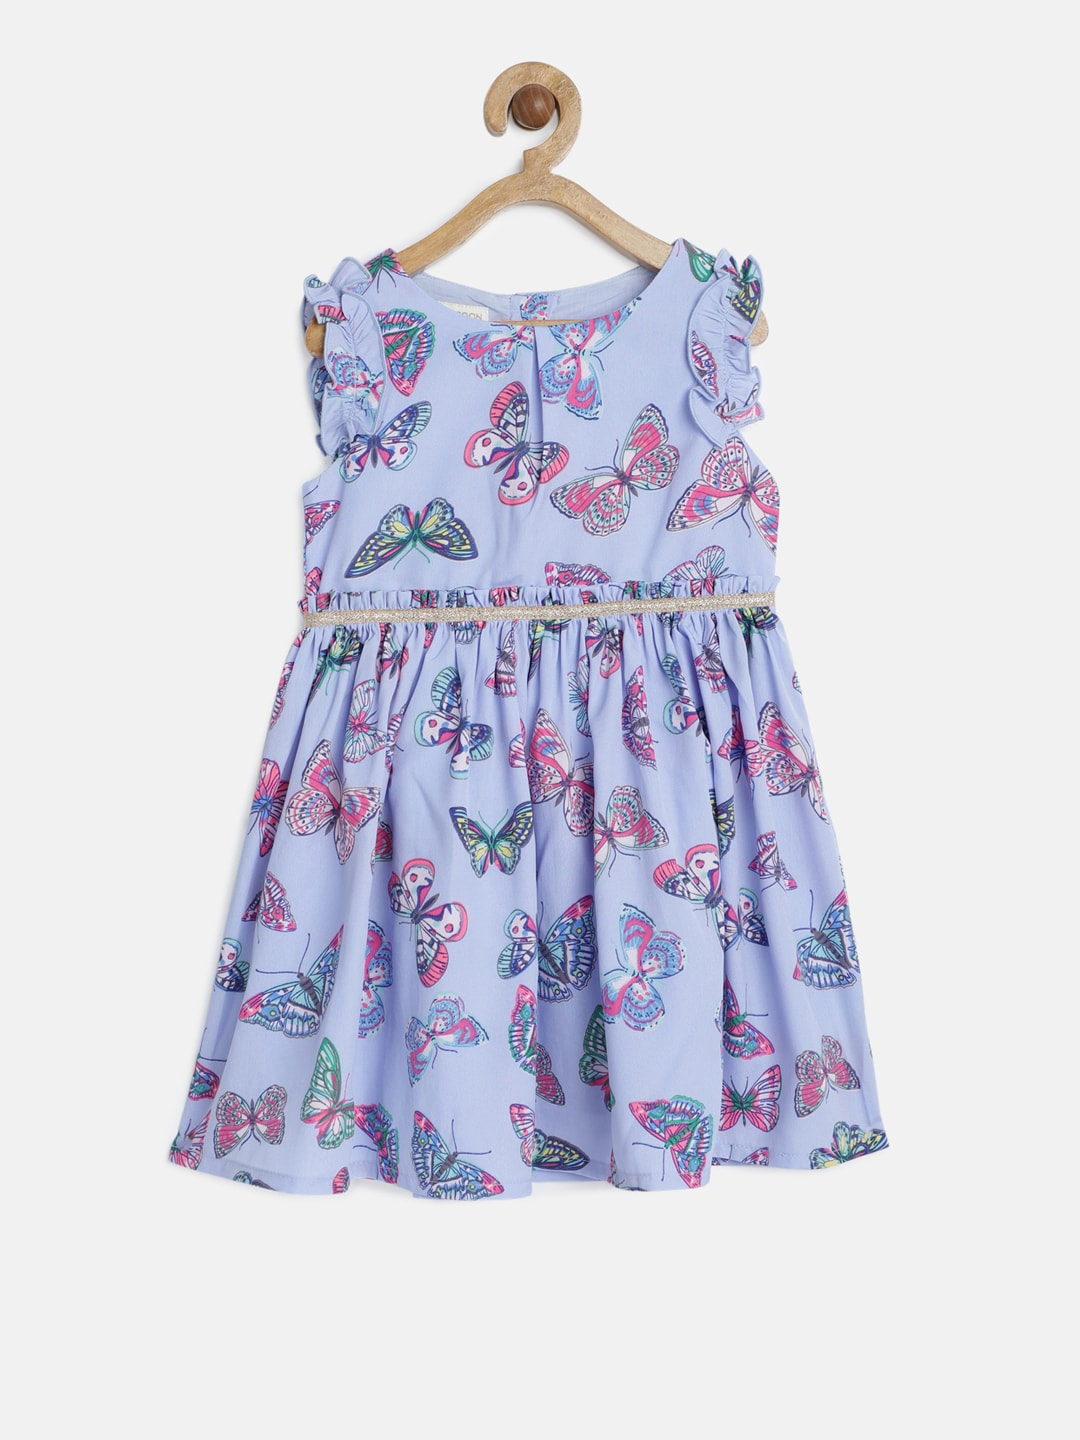 335954c77 Girls Dresses - Buy Frocks   Gowns for Girls Online